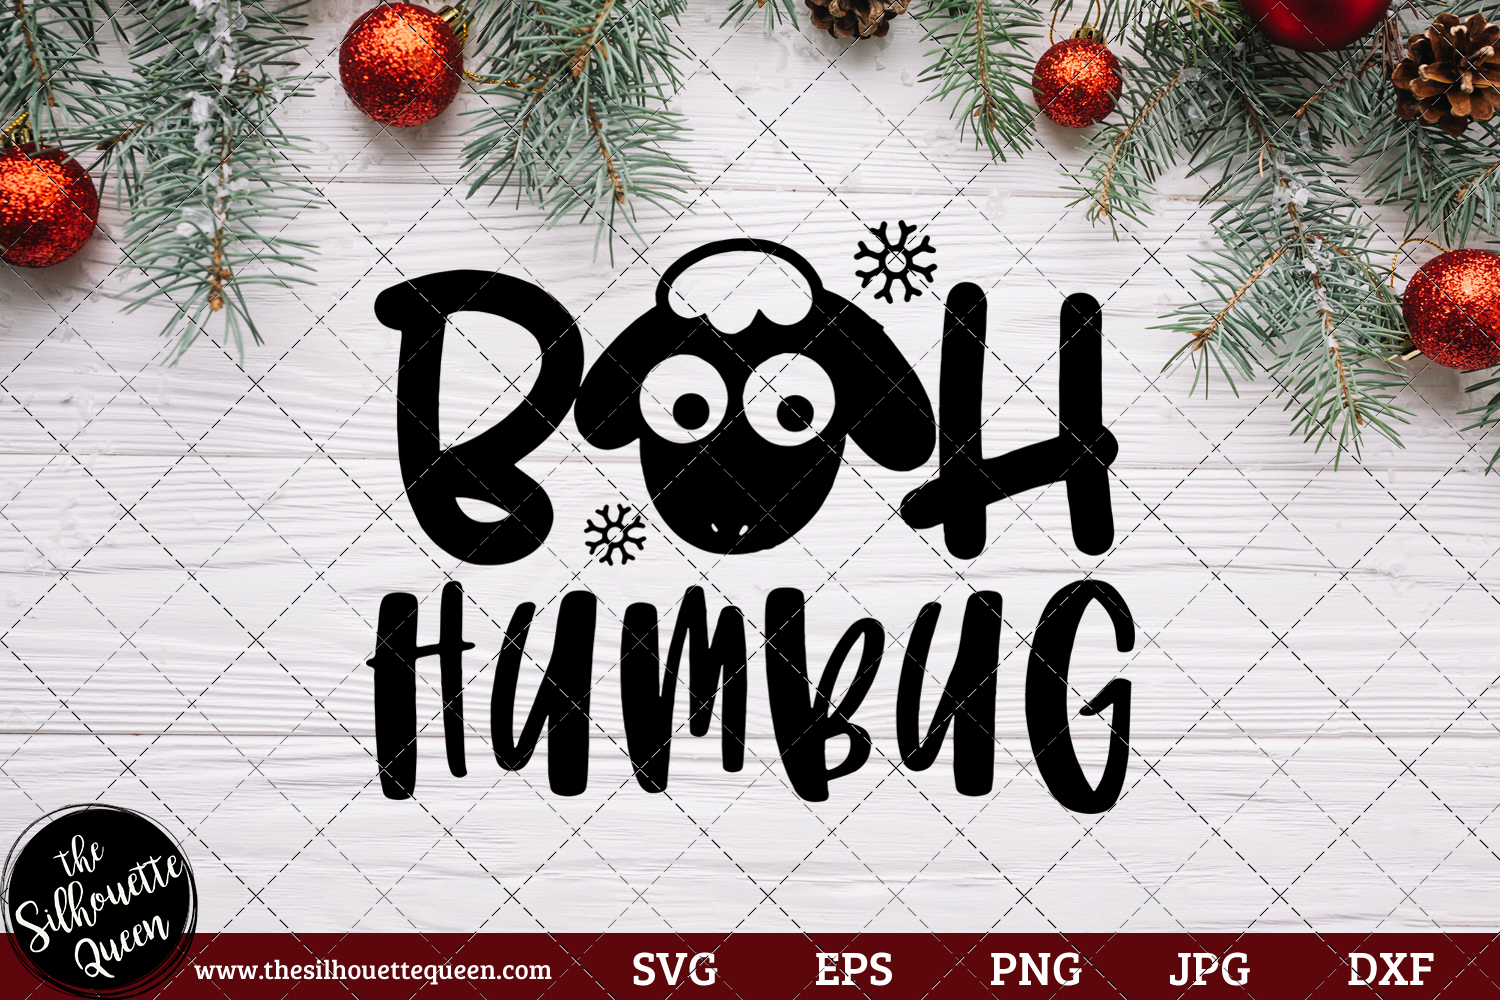 Bah Humbug Saying Svg Christmas Svg Holiday Svg Holiday Saying Jpg Eps Dxf Png Cut File For Cricut Clipart Silhouette The Silhouette Queen